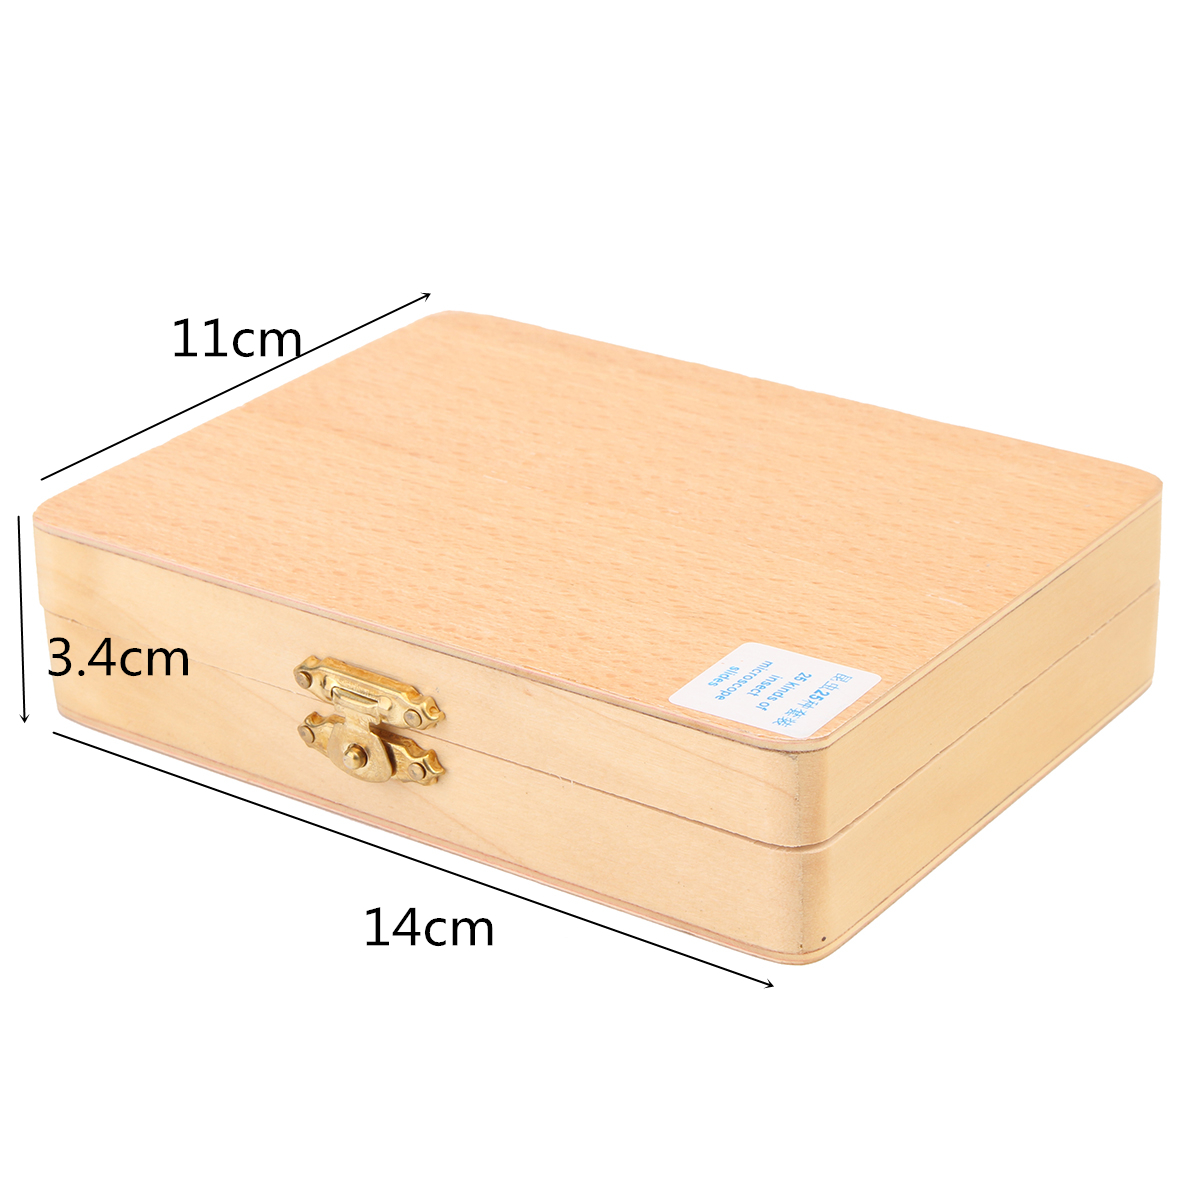 25Pcs Basic Science Biological Microscope Glass Slides Sample With Wooden Box